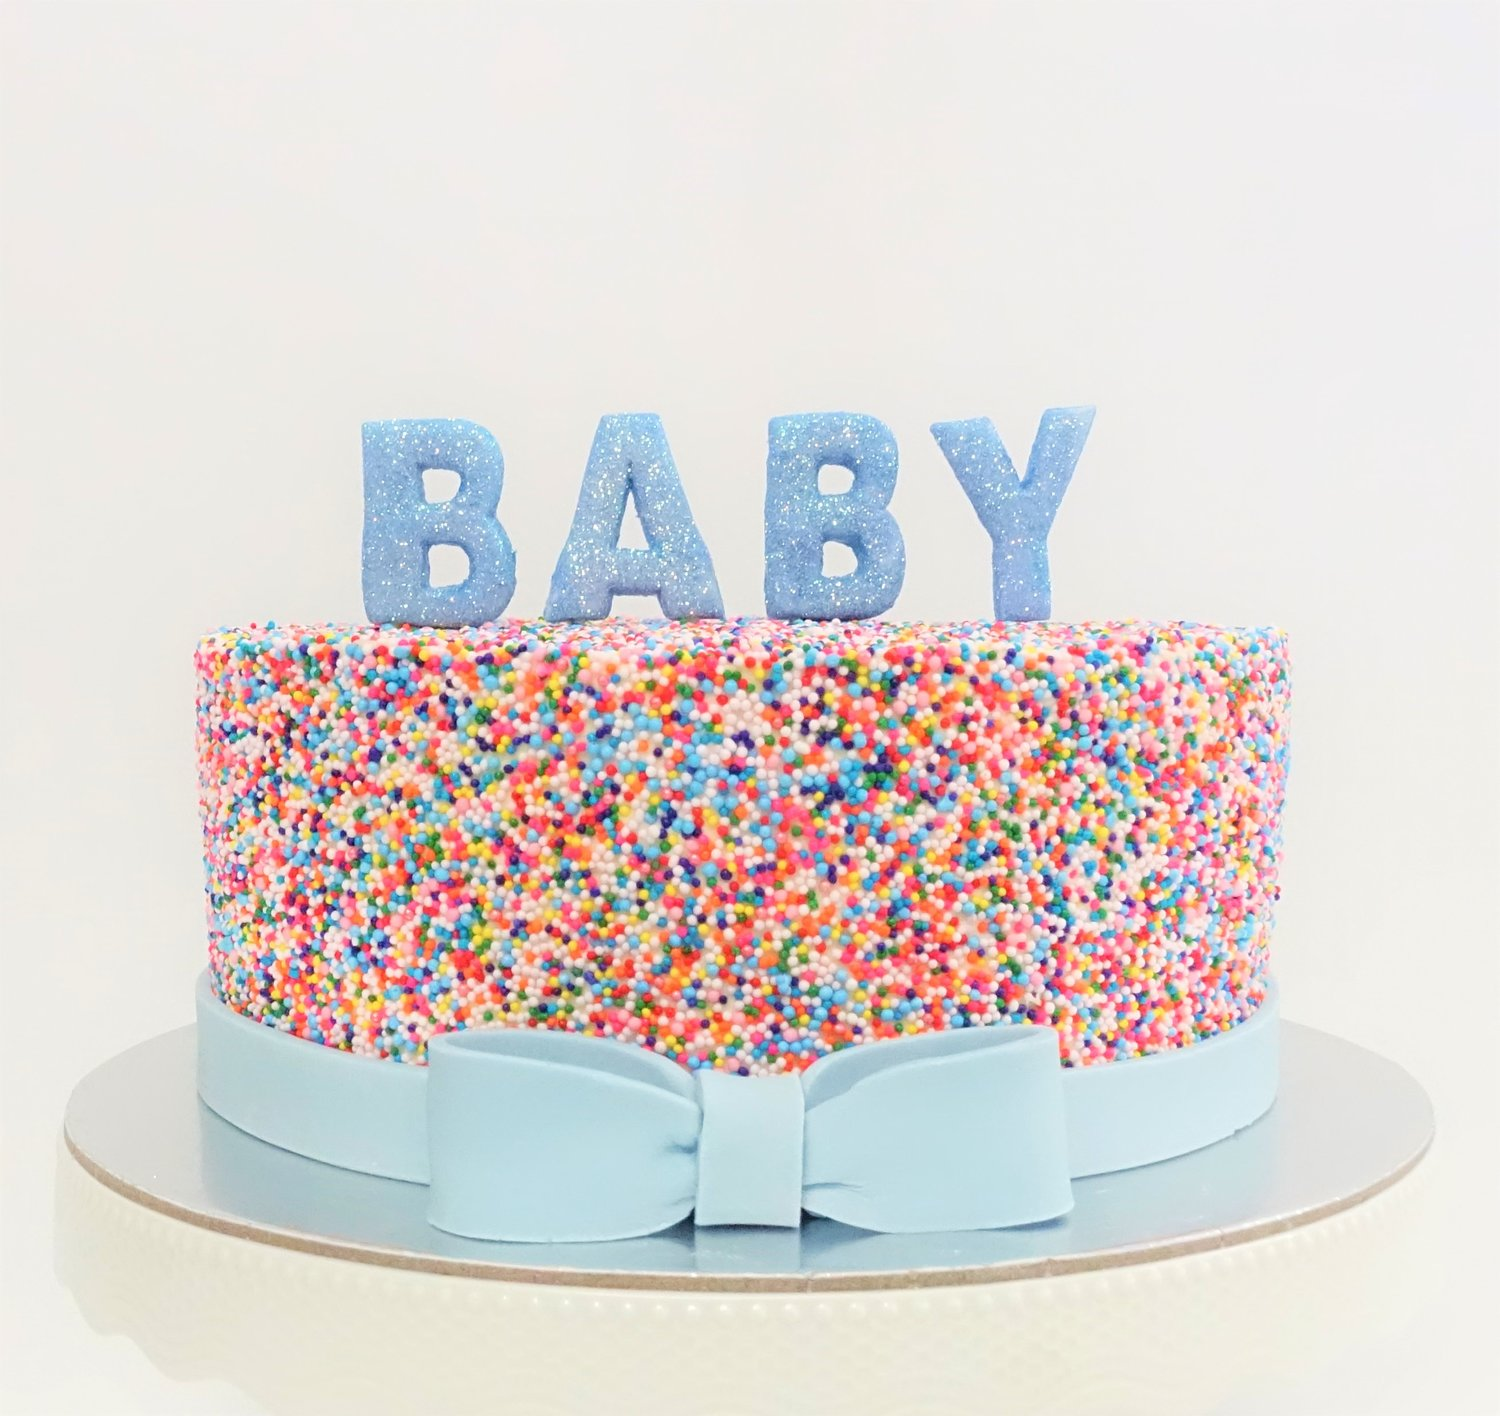 New Blue One For The Online Shop BELVEDERE HOTEL WOODY POINT Last Sundy 1 Sprinkle BABY Cake